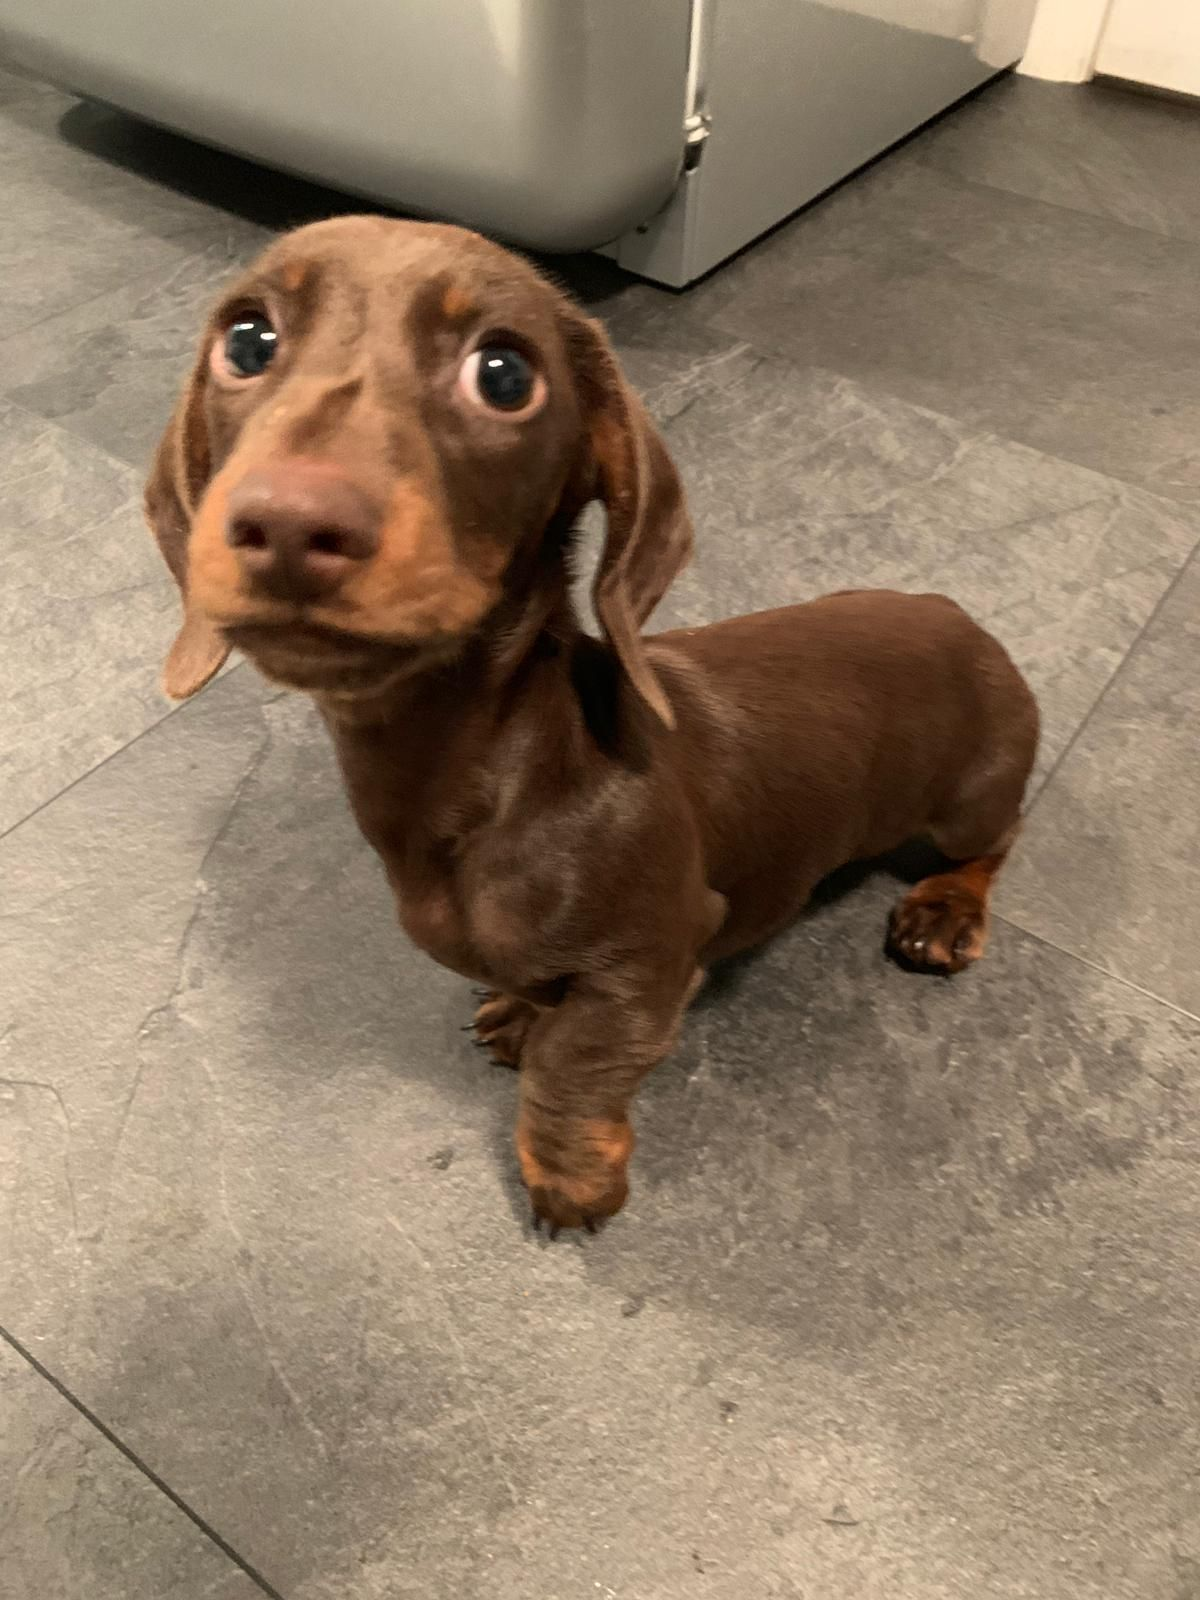 Pin By Bonnie Hutchison On Dogs Dachshund Puppies Cute Animals